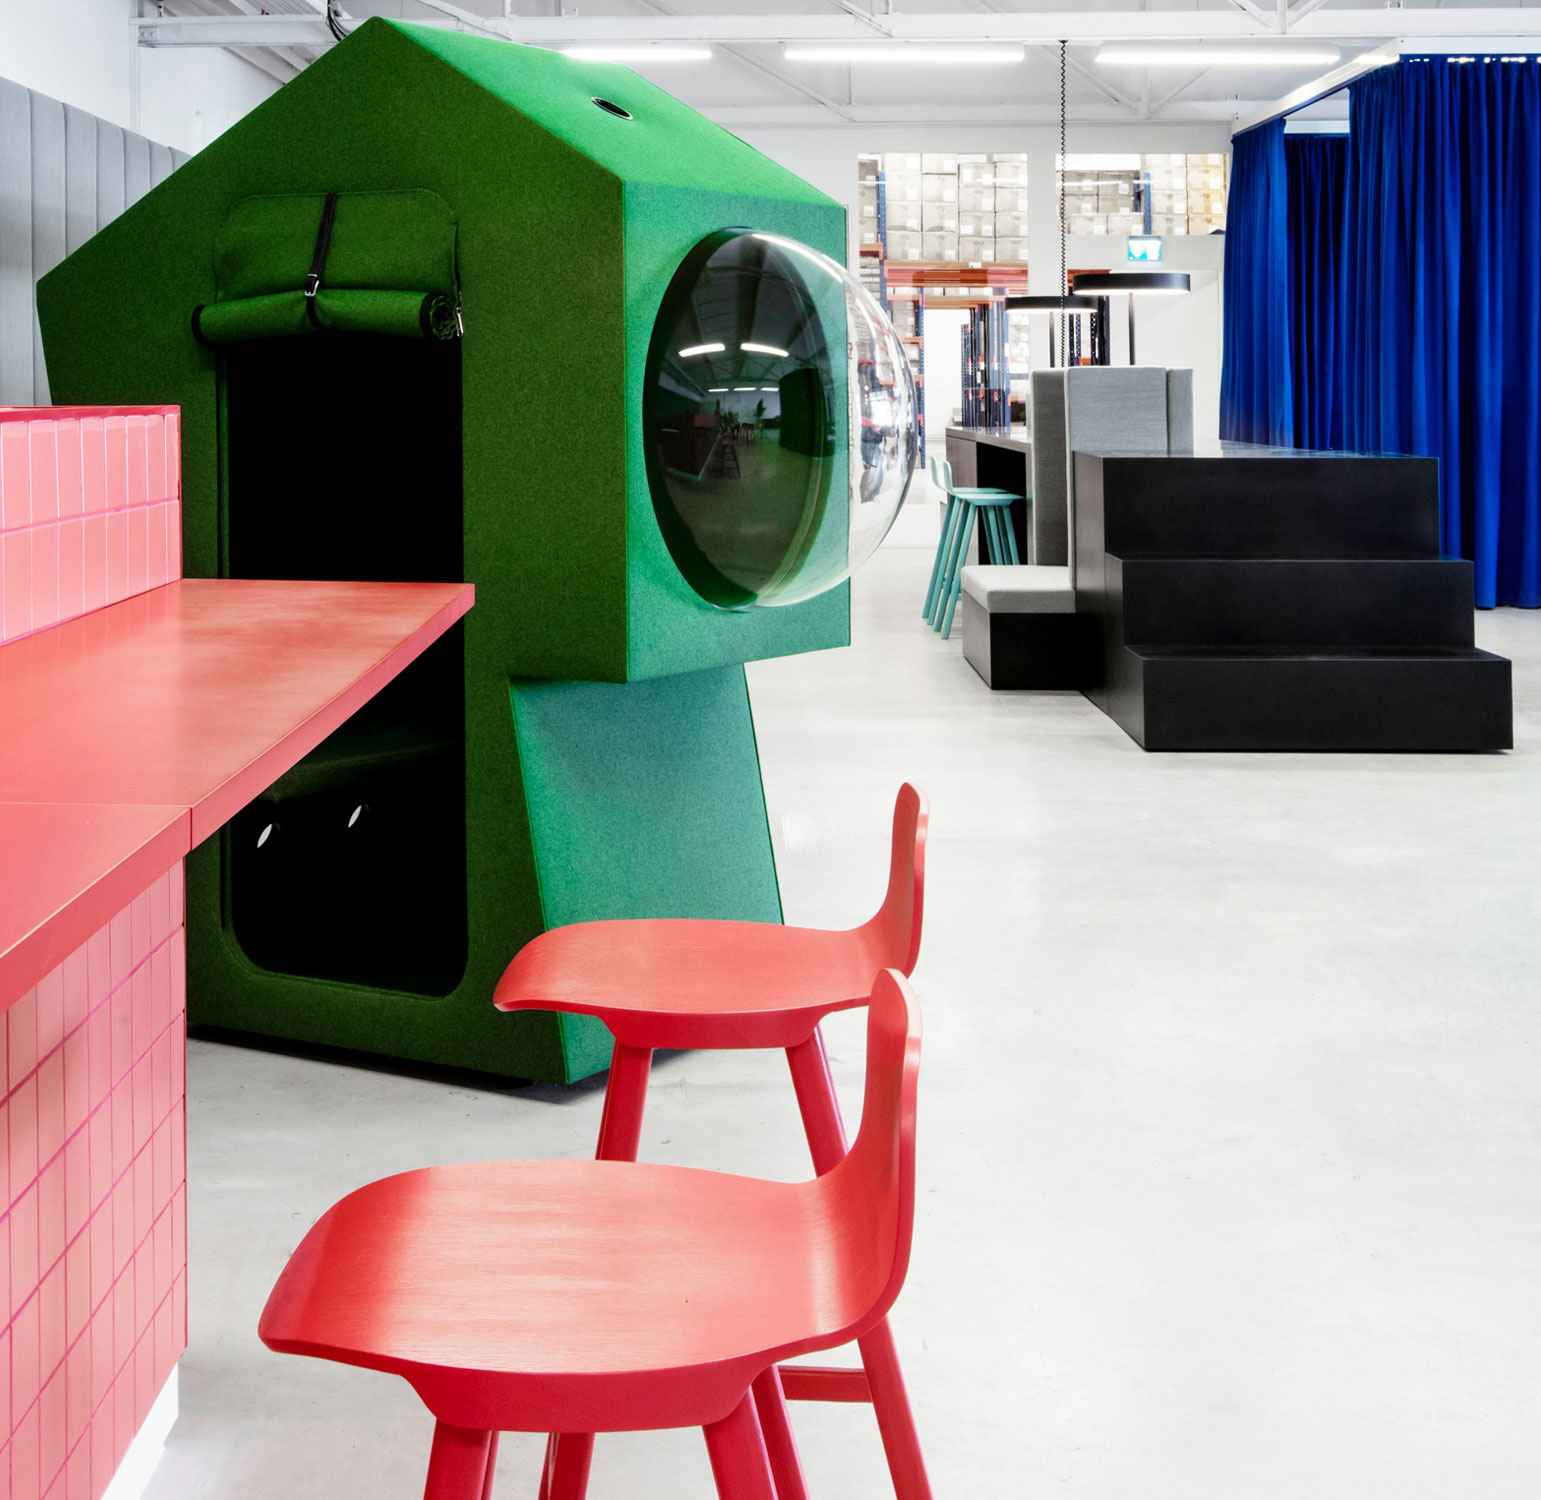 Studio Aisslingers LOQI Activity Office in Berlin